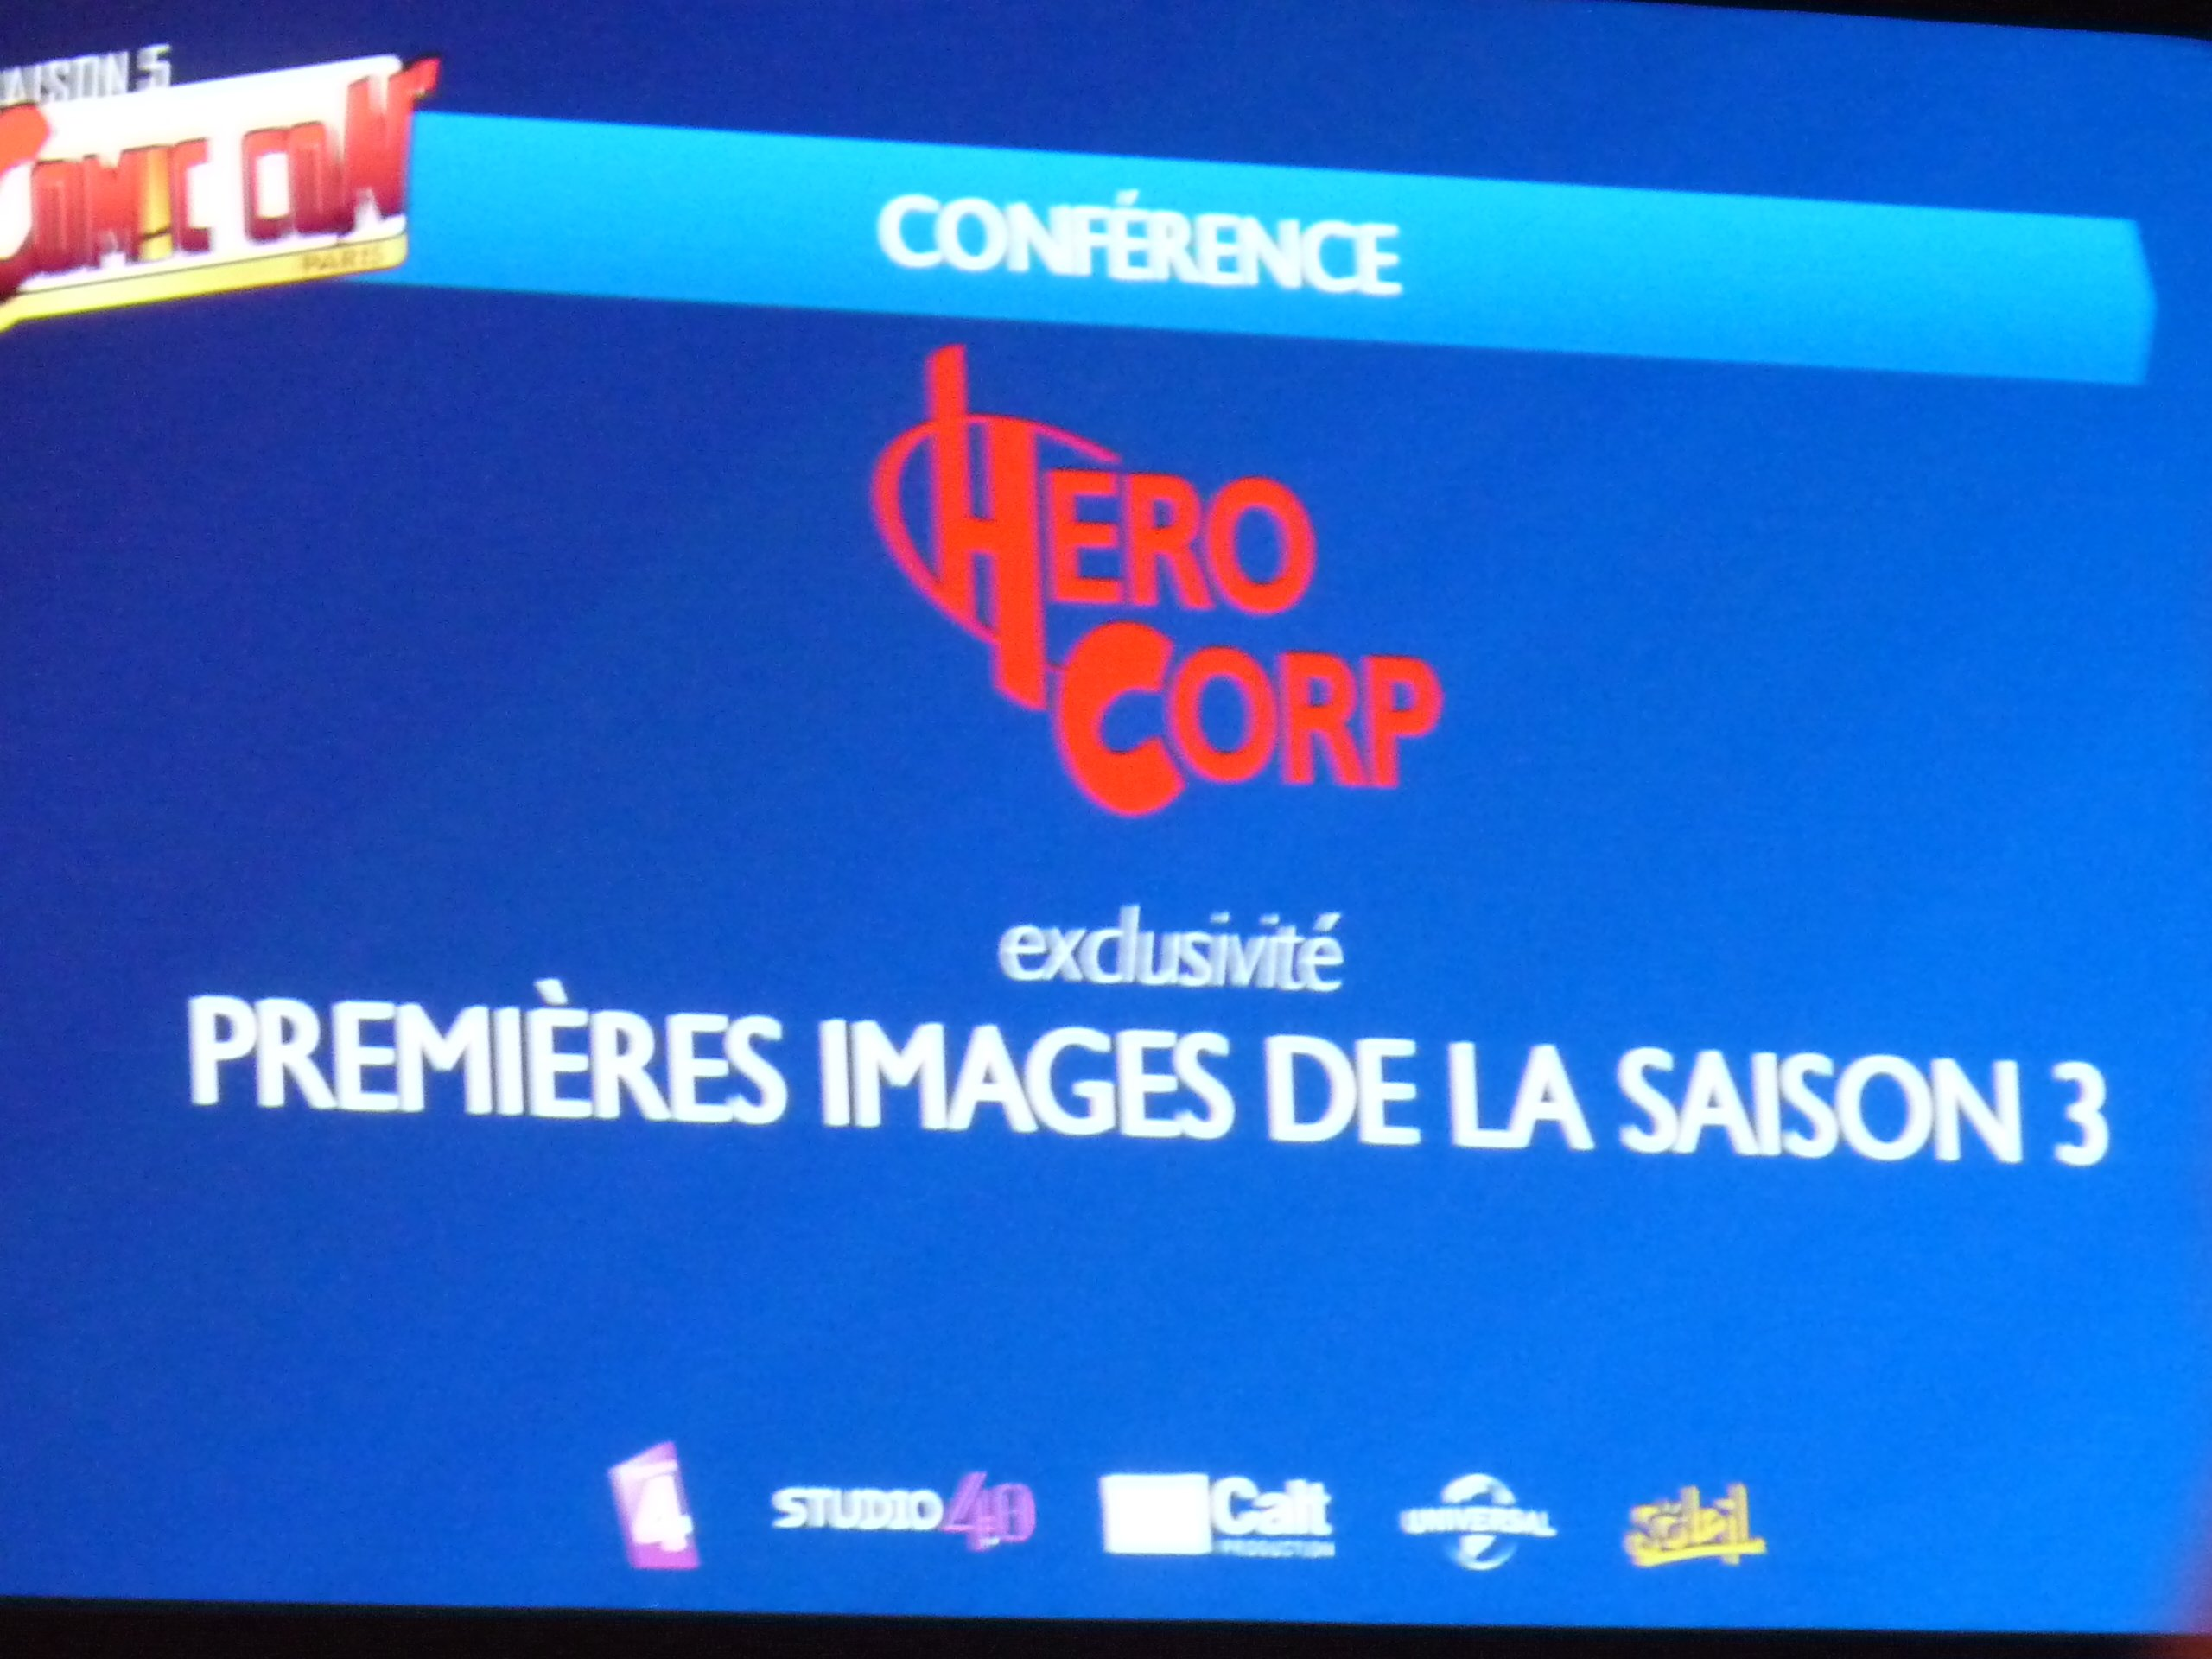 Titre conference hero corp